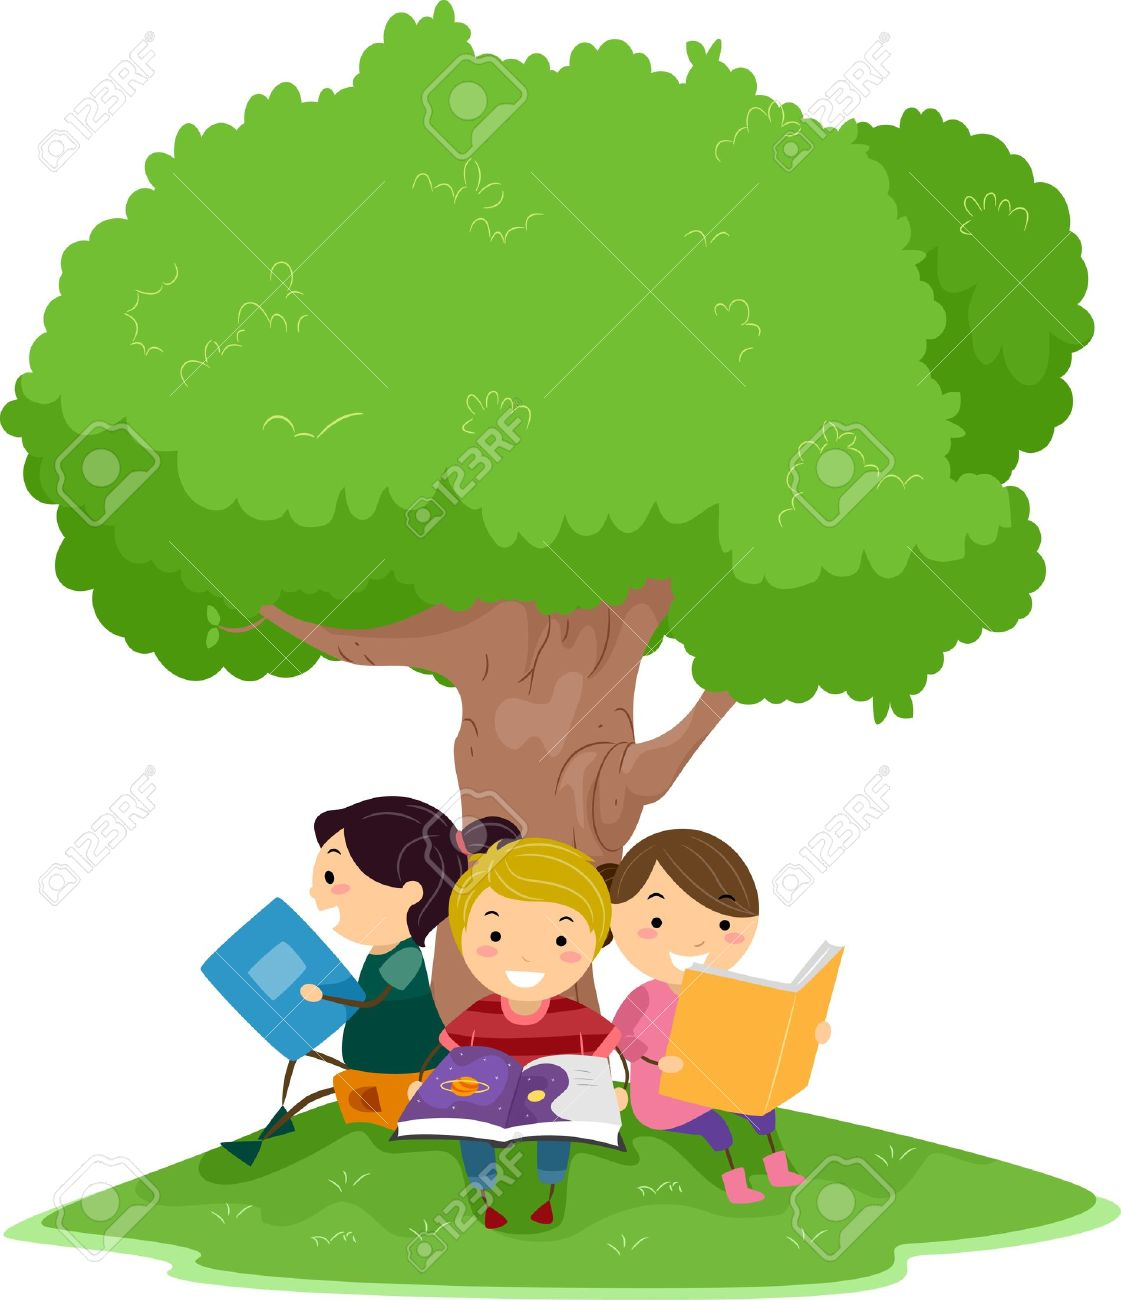 tree shade clipart 20 free Cliparts   Download images on ...